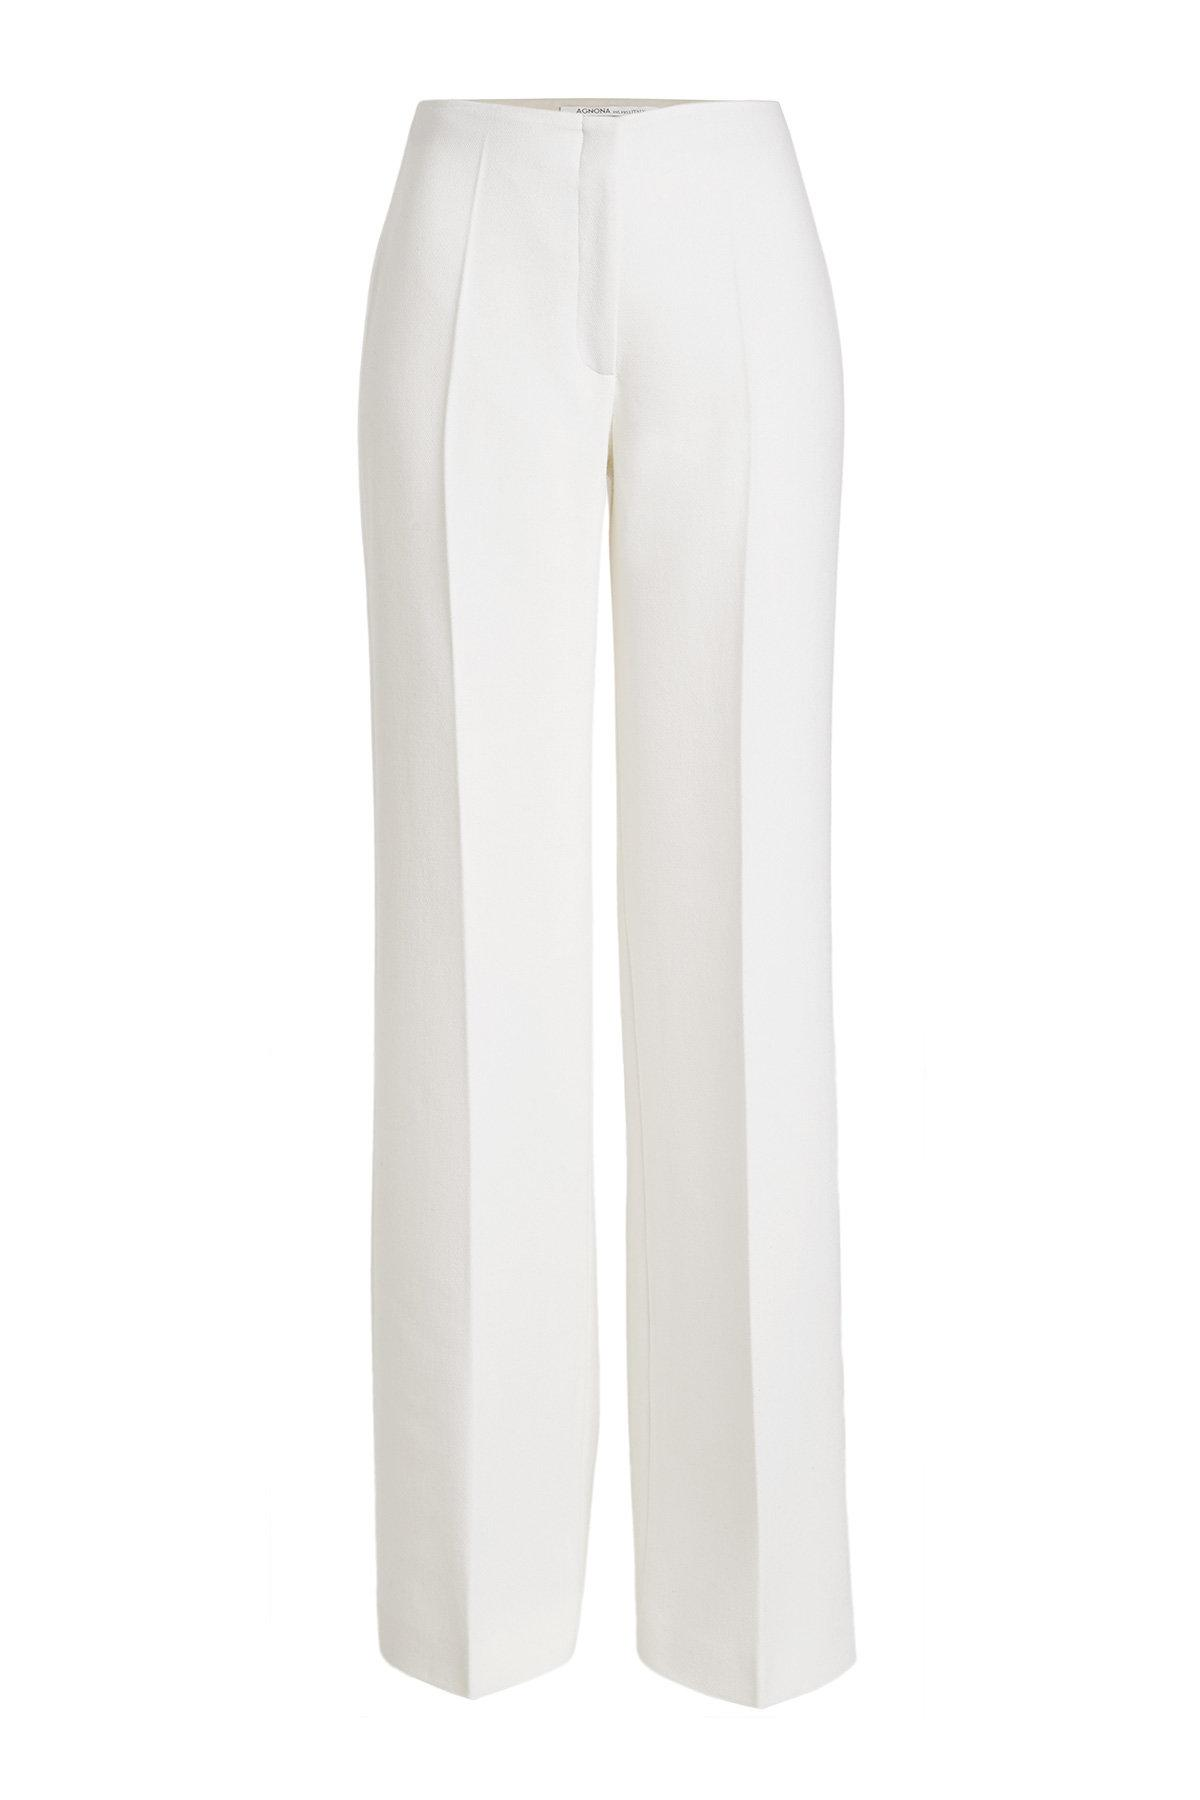 Agnona Wool Wide-leg Trousers In White